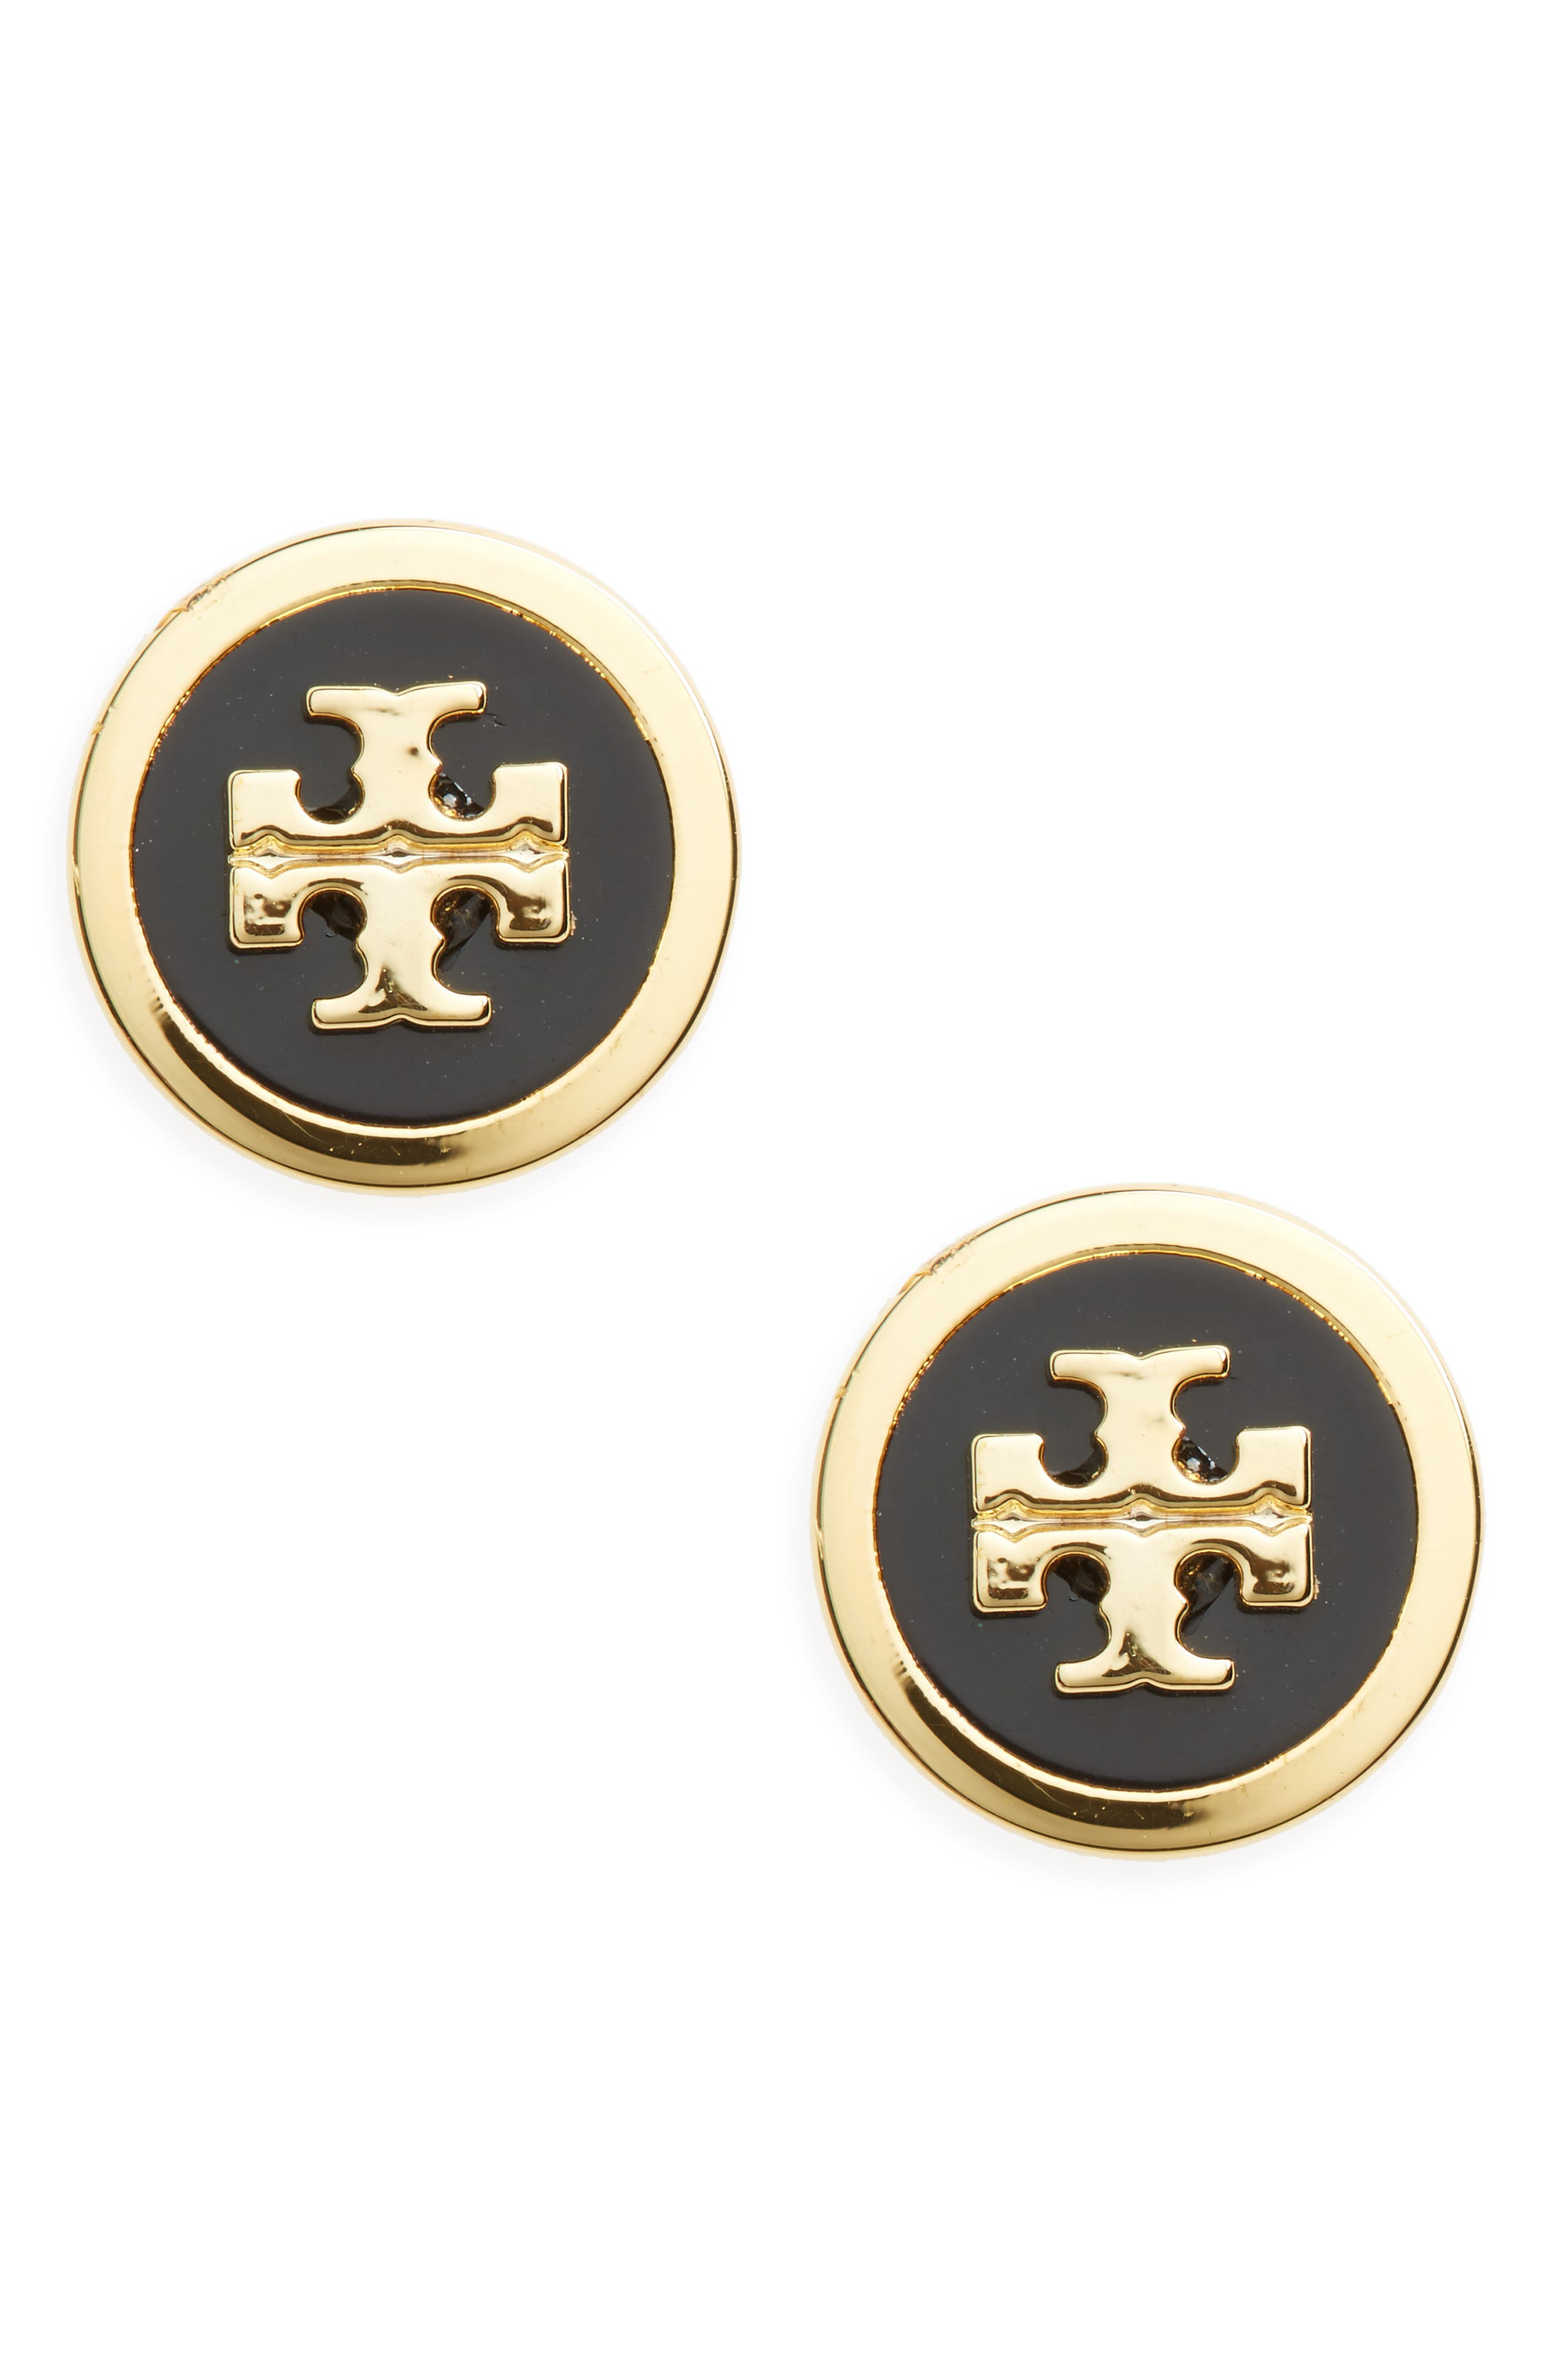 TORY BURCH, Logo Stud Earrings, Main thumbnail 1, color, BLACK / TORY GOLD